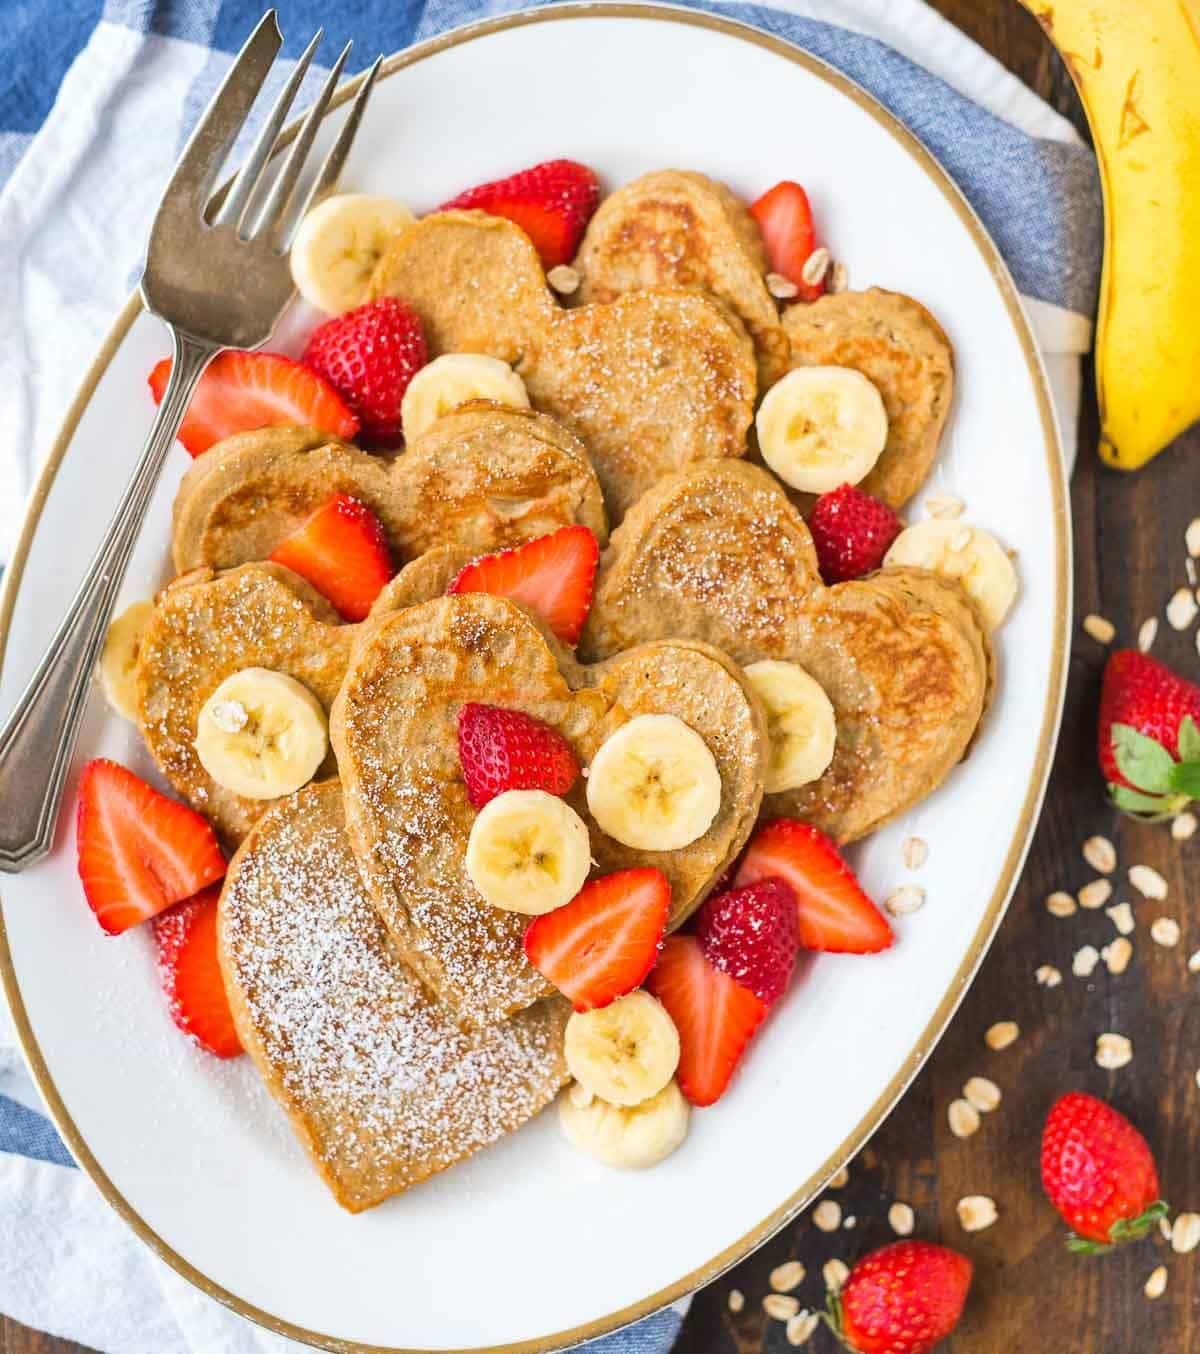 Heart-shaped oatmeal pancakes on a white platter with fresh fruit